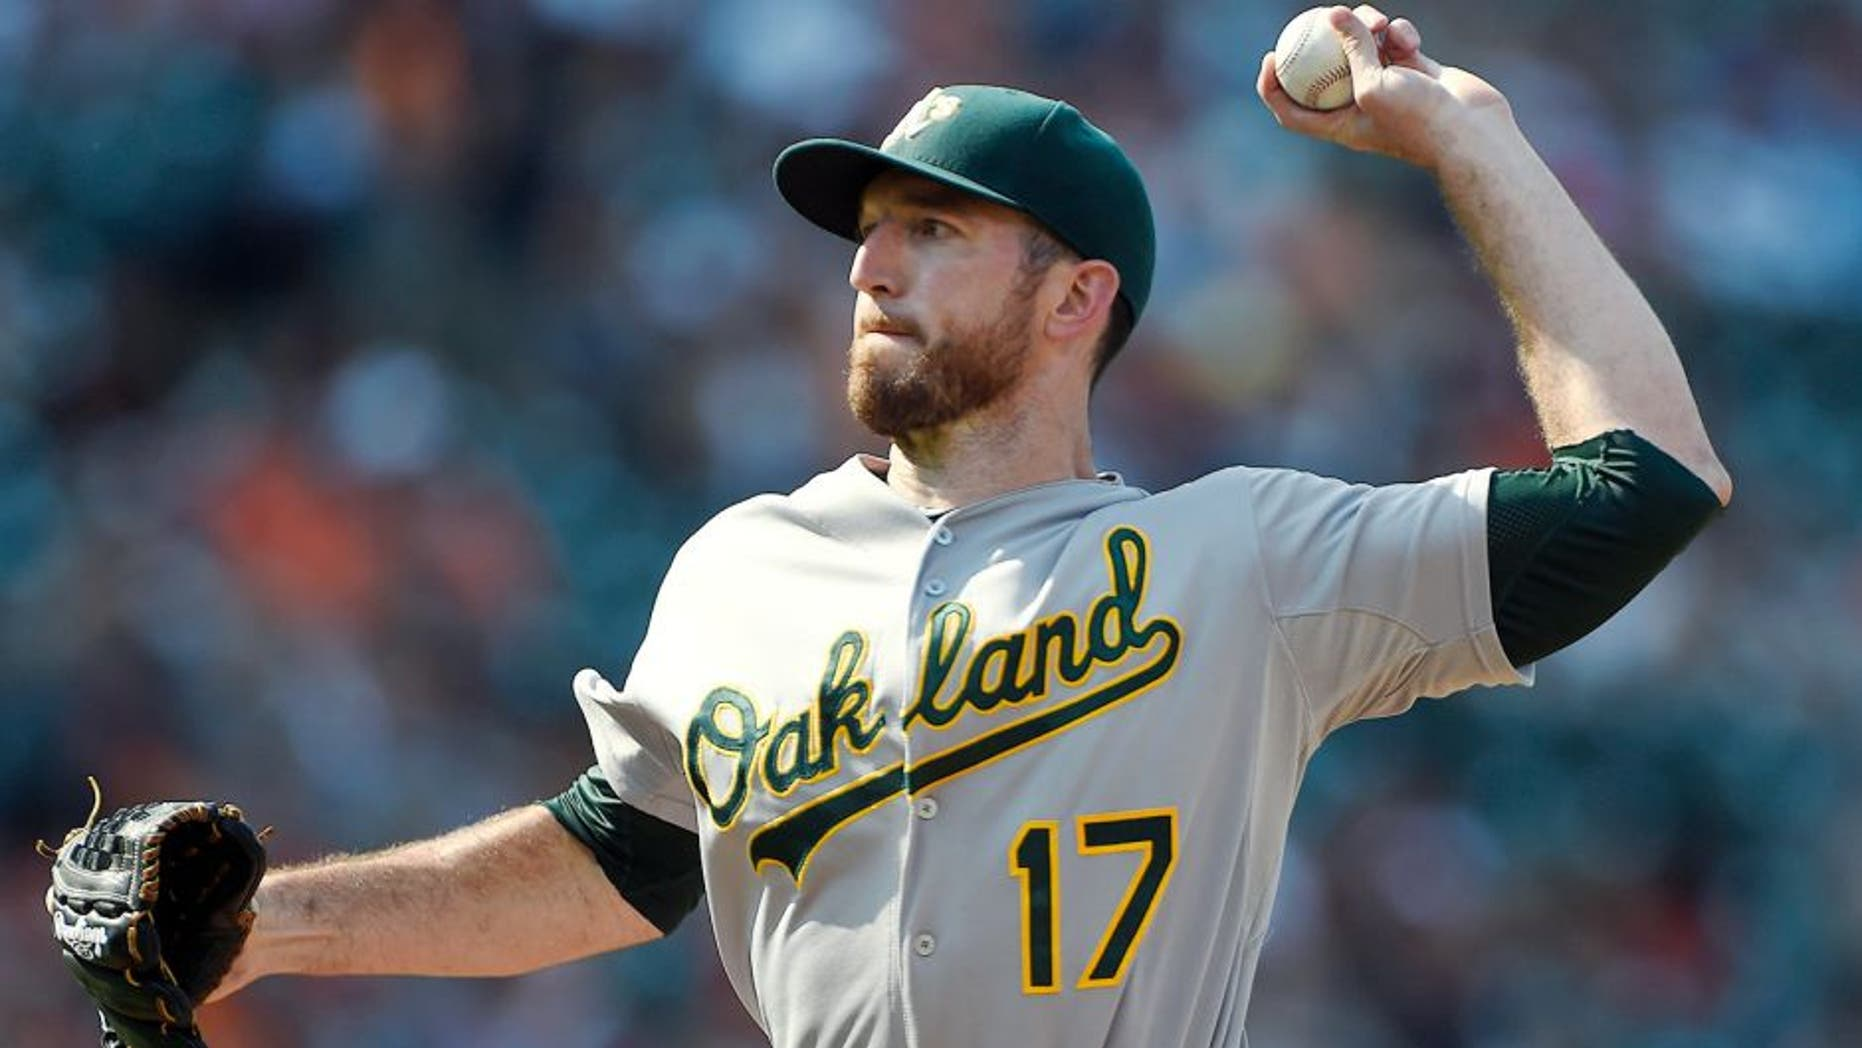 Aug 16, 2015; Baltimore, MD, USA; Oakland Athletics first baseman Ike Davis (17) pitches during the eighth inning against the Baltimore Orioles at Oriole Park at Camden Yards. The Orioles won 18-2. Mandatory Credit: Tommy Gilligan-USA TODAY Sports